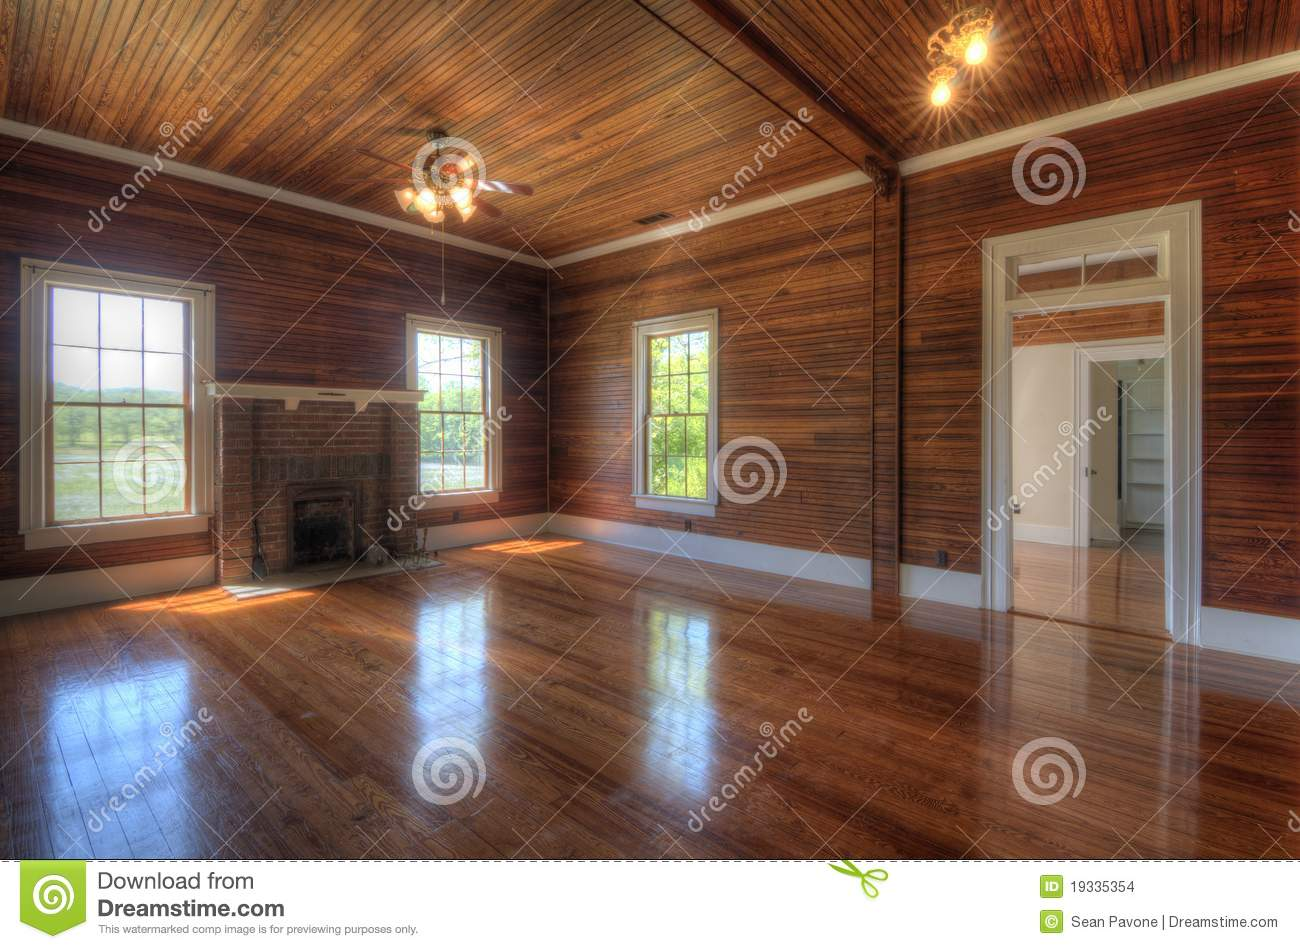 https://thumbs.dreamstime.com/z/wooden-interior-living-room-19335354.jpg